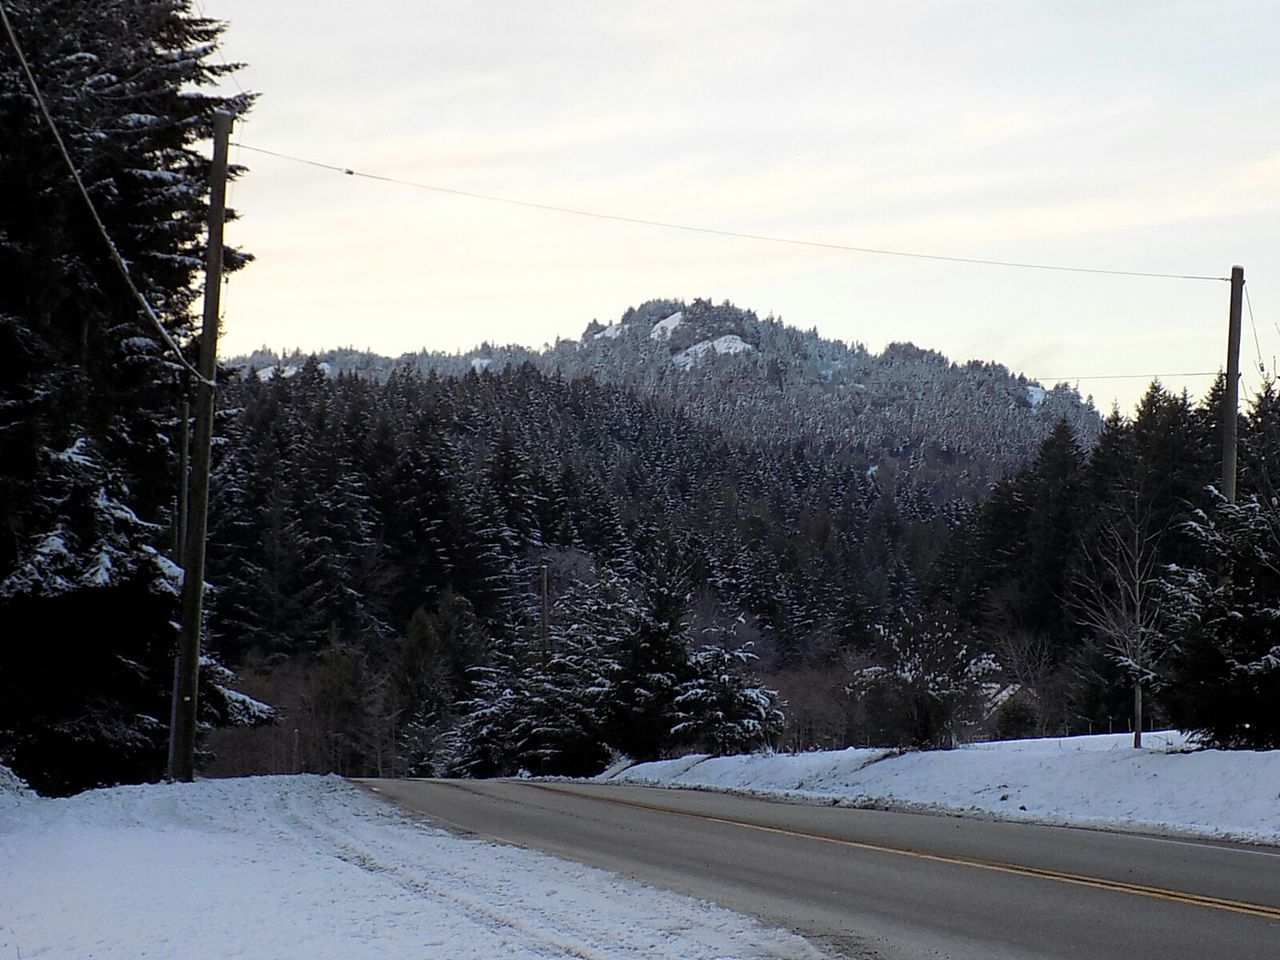 Afternoon drive Vancouverisland No Edits No Filters Tranquility EyeEm Best Shots - Nature Vancouver Island Canada EyeEm Gallery Pine Woodland Snow ❄ Snow❄⛄ My Year My View Outdoors Landscape Winter Landscapes